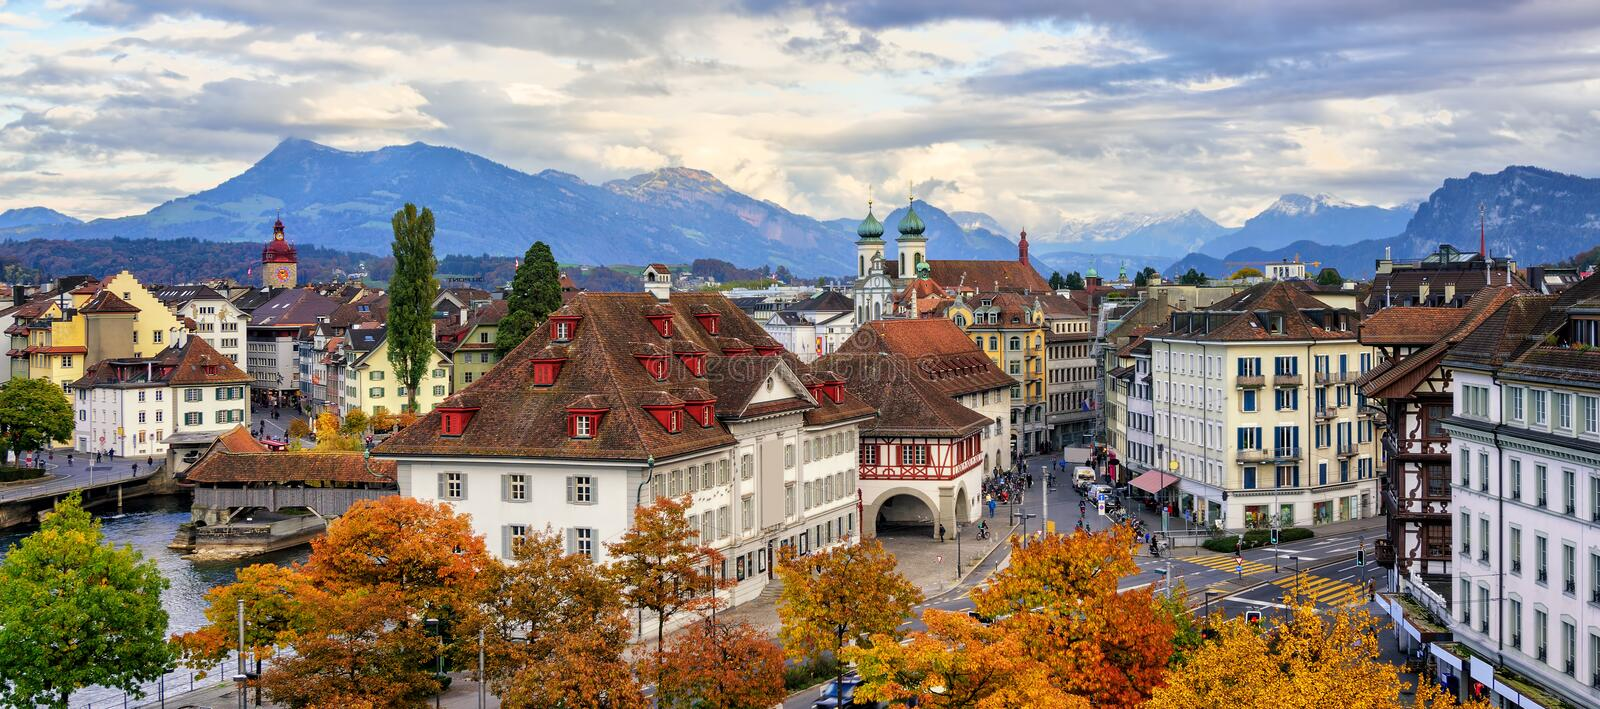 Panoramic view of Lucerne old town, Switzerland royalty free stock images